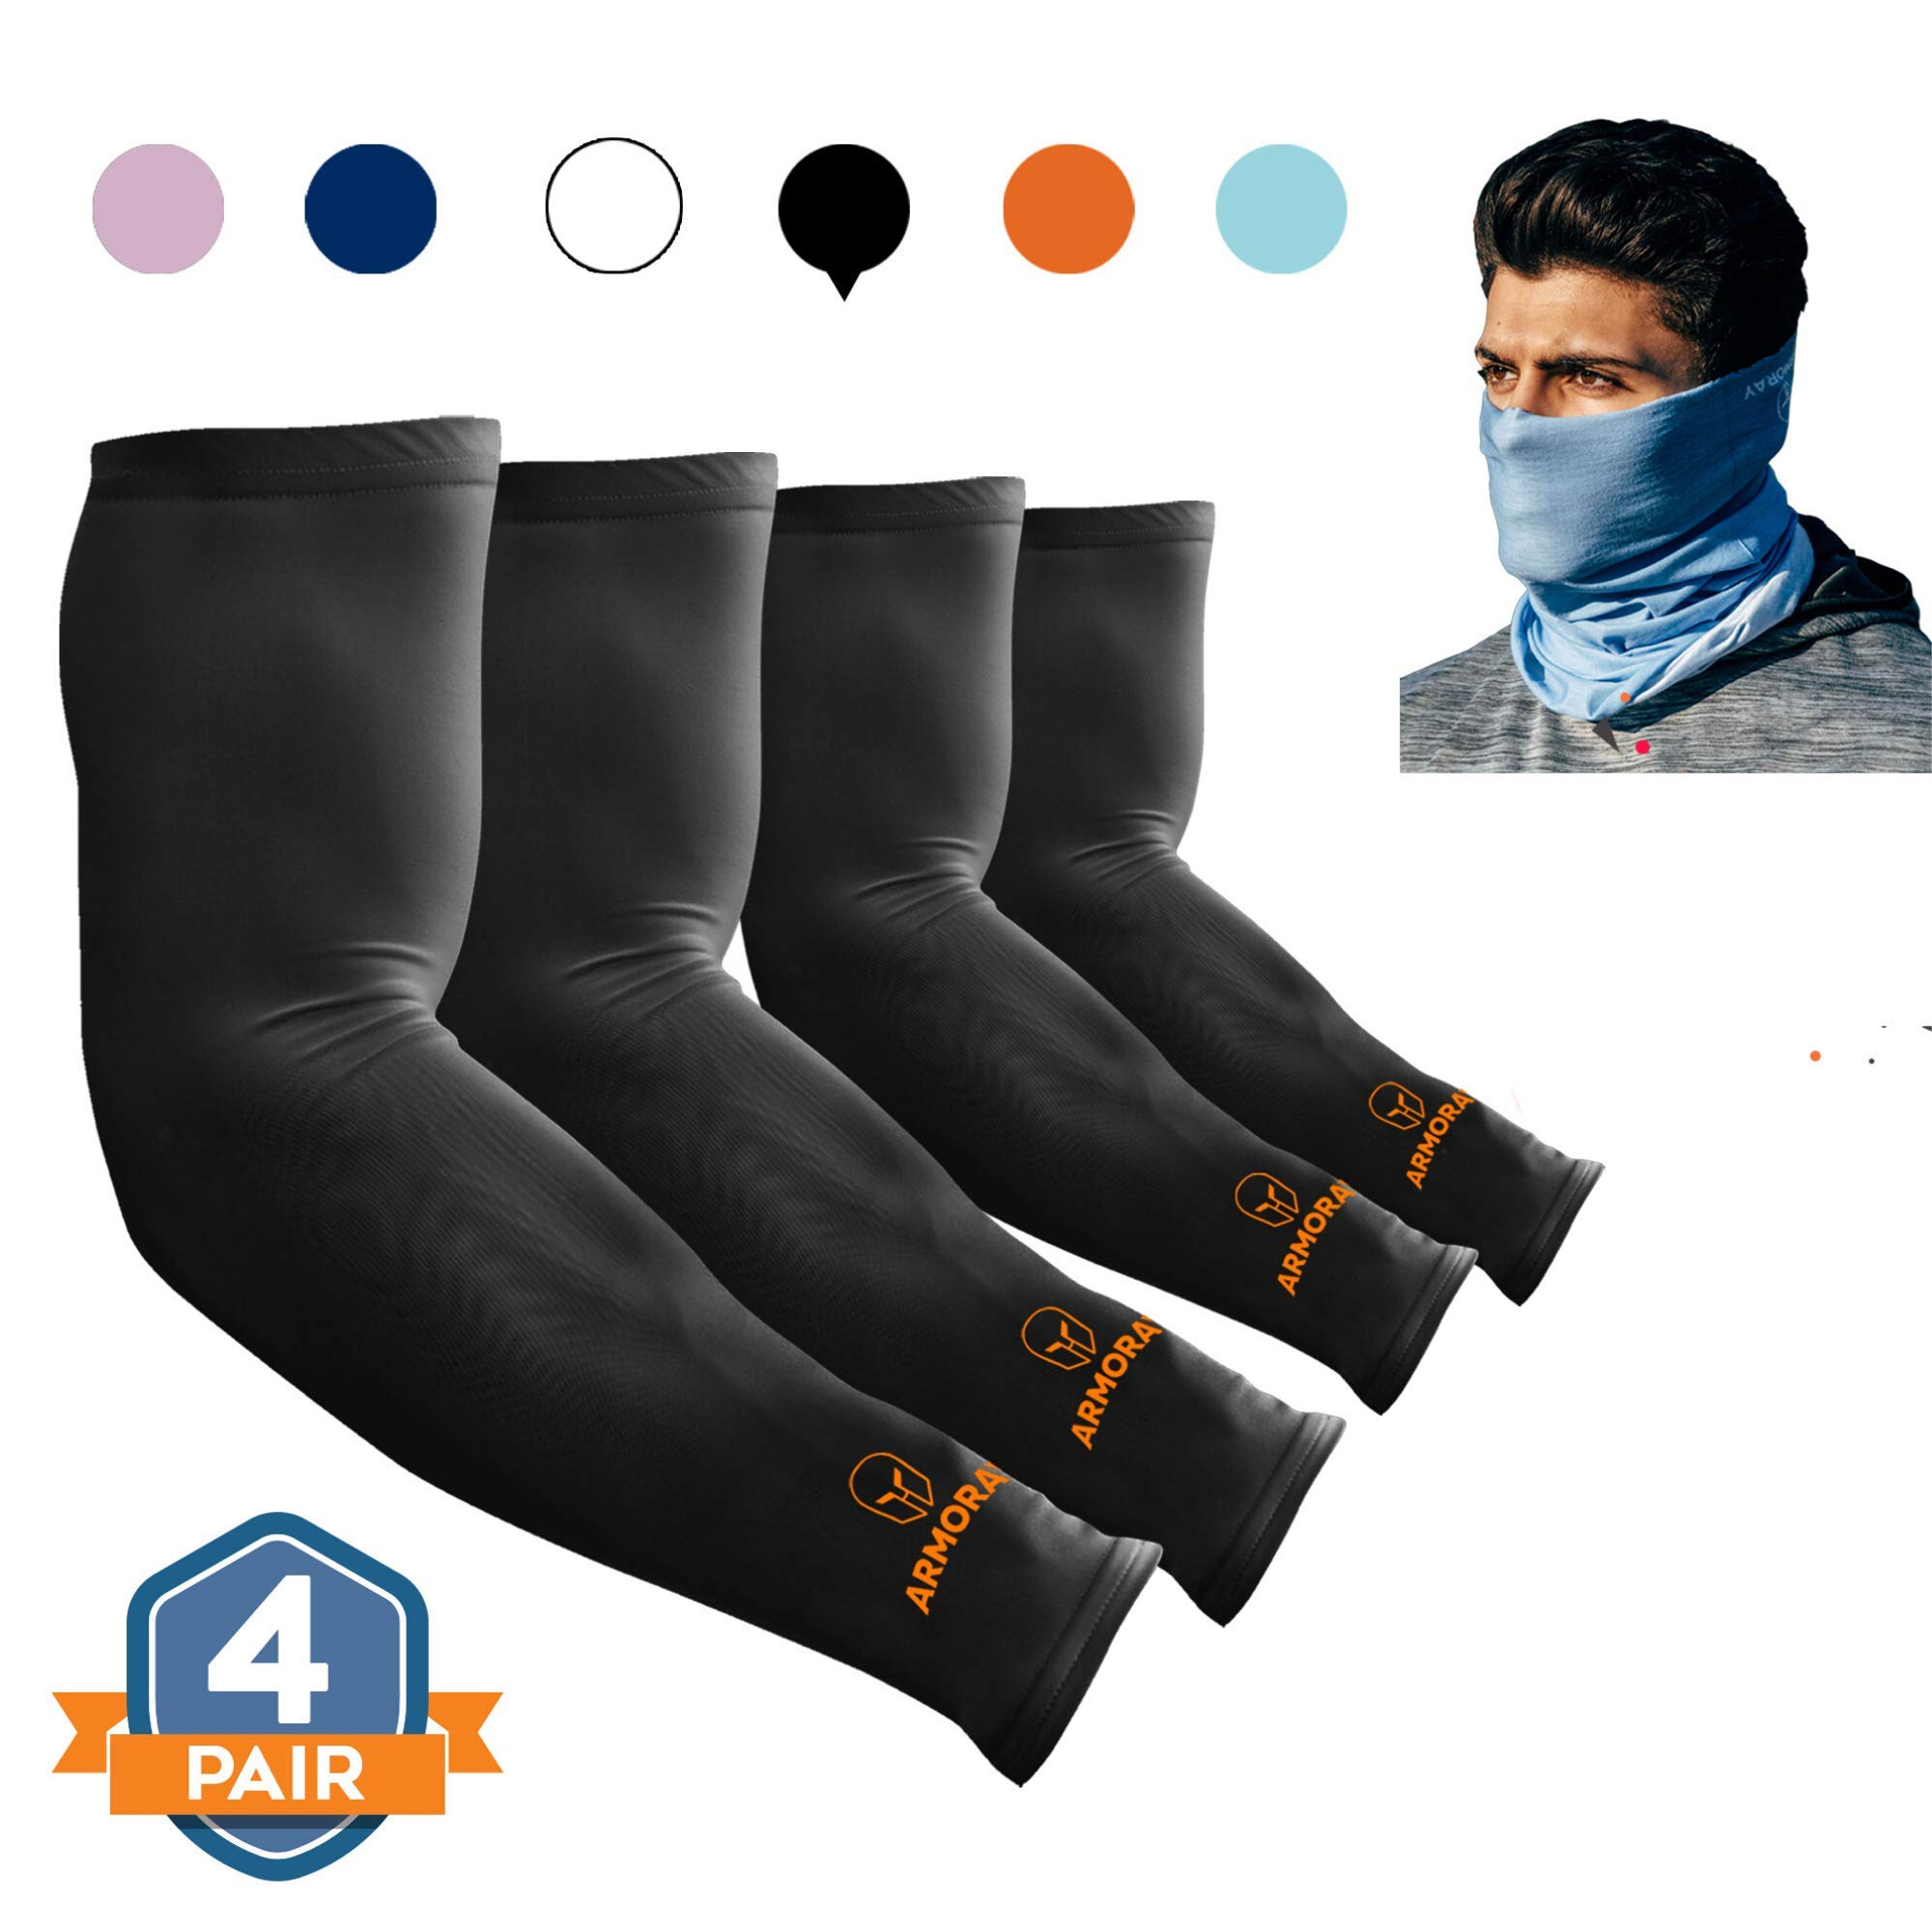 ARMORAY Arm Sleeves for Men or Women